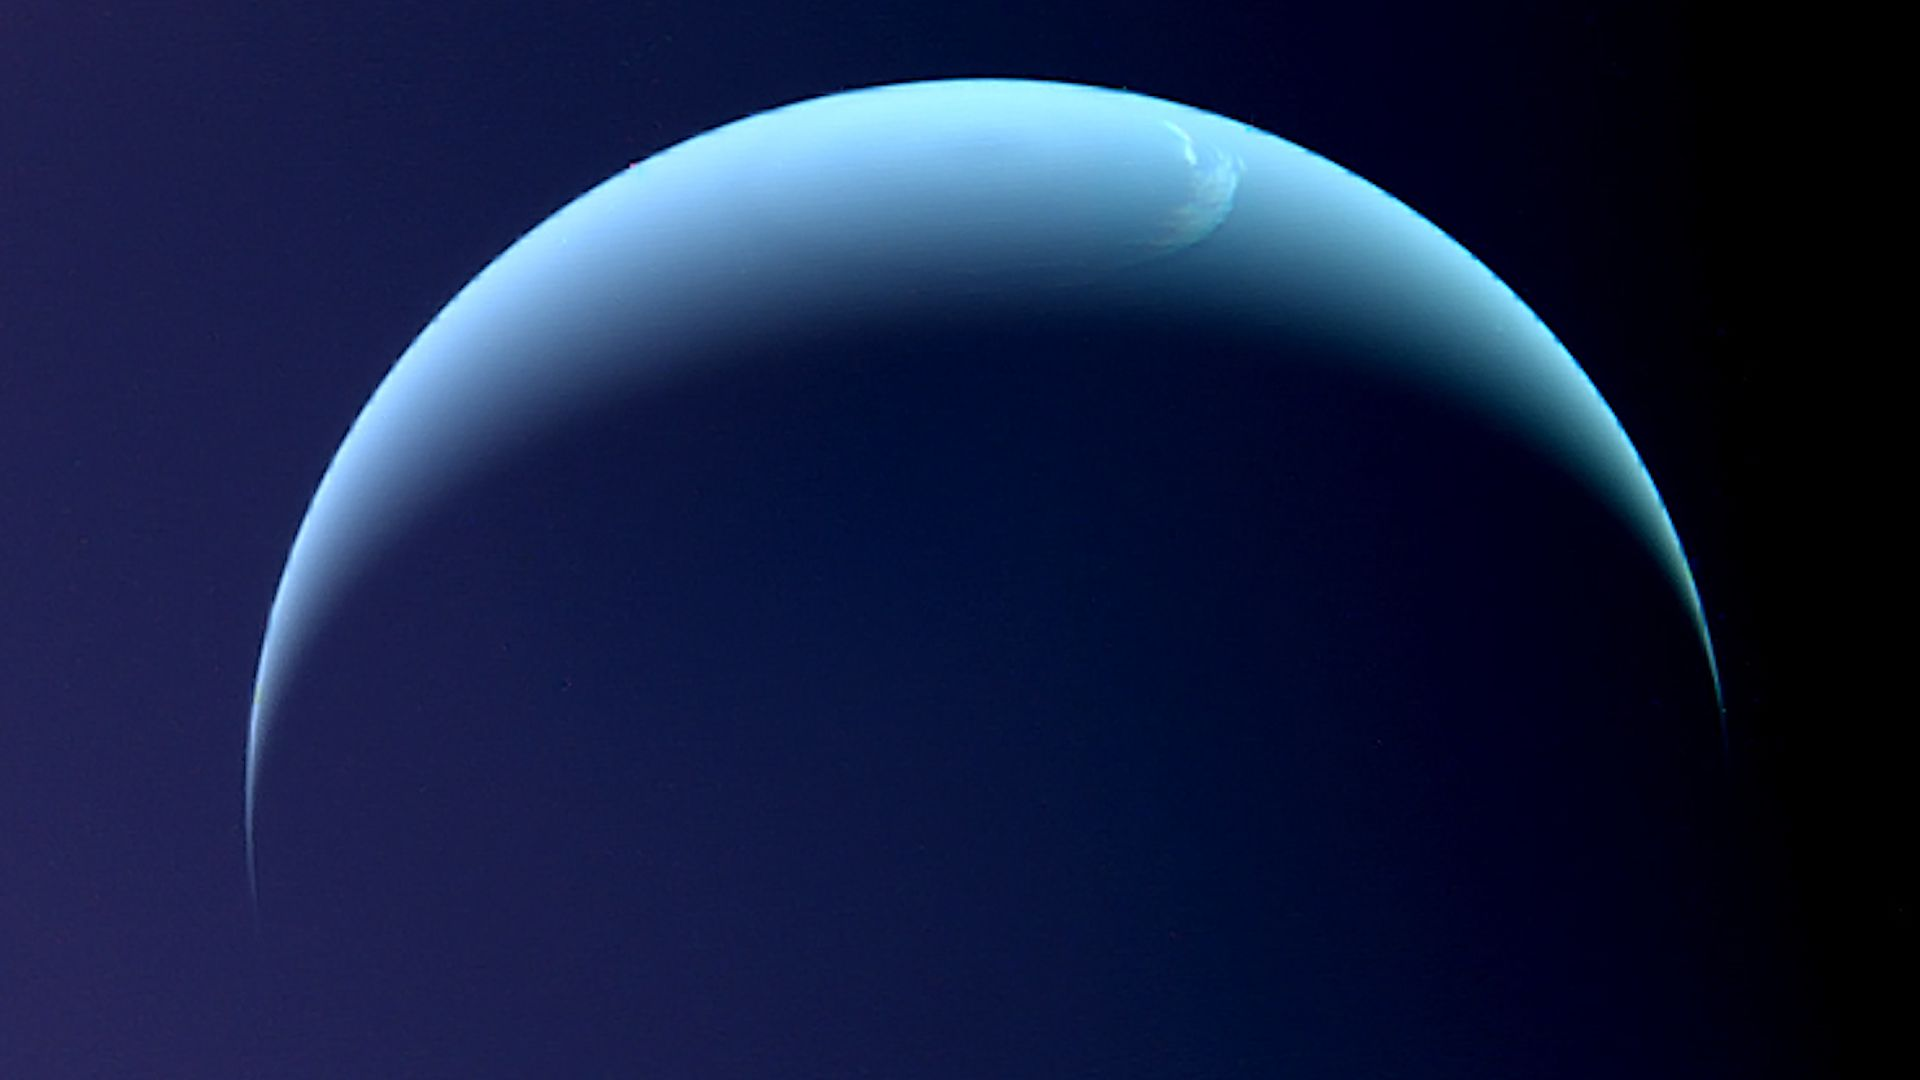 Neptune as seen by the Voyager 2 spacecraft.